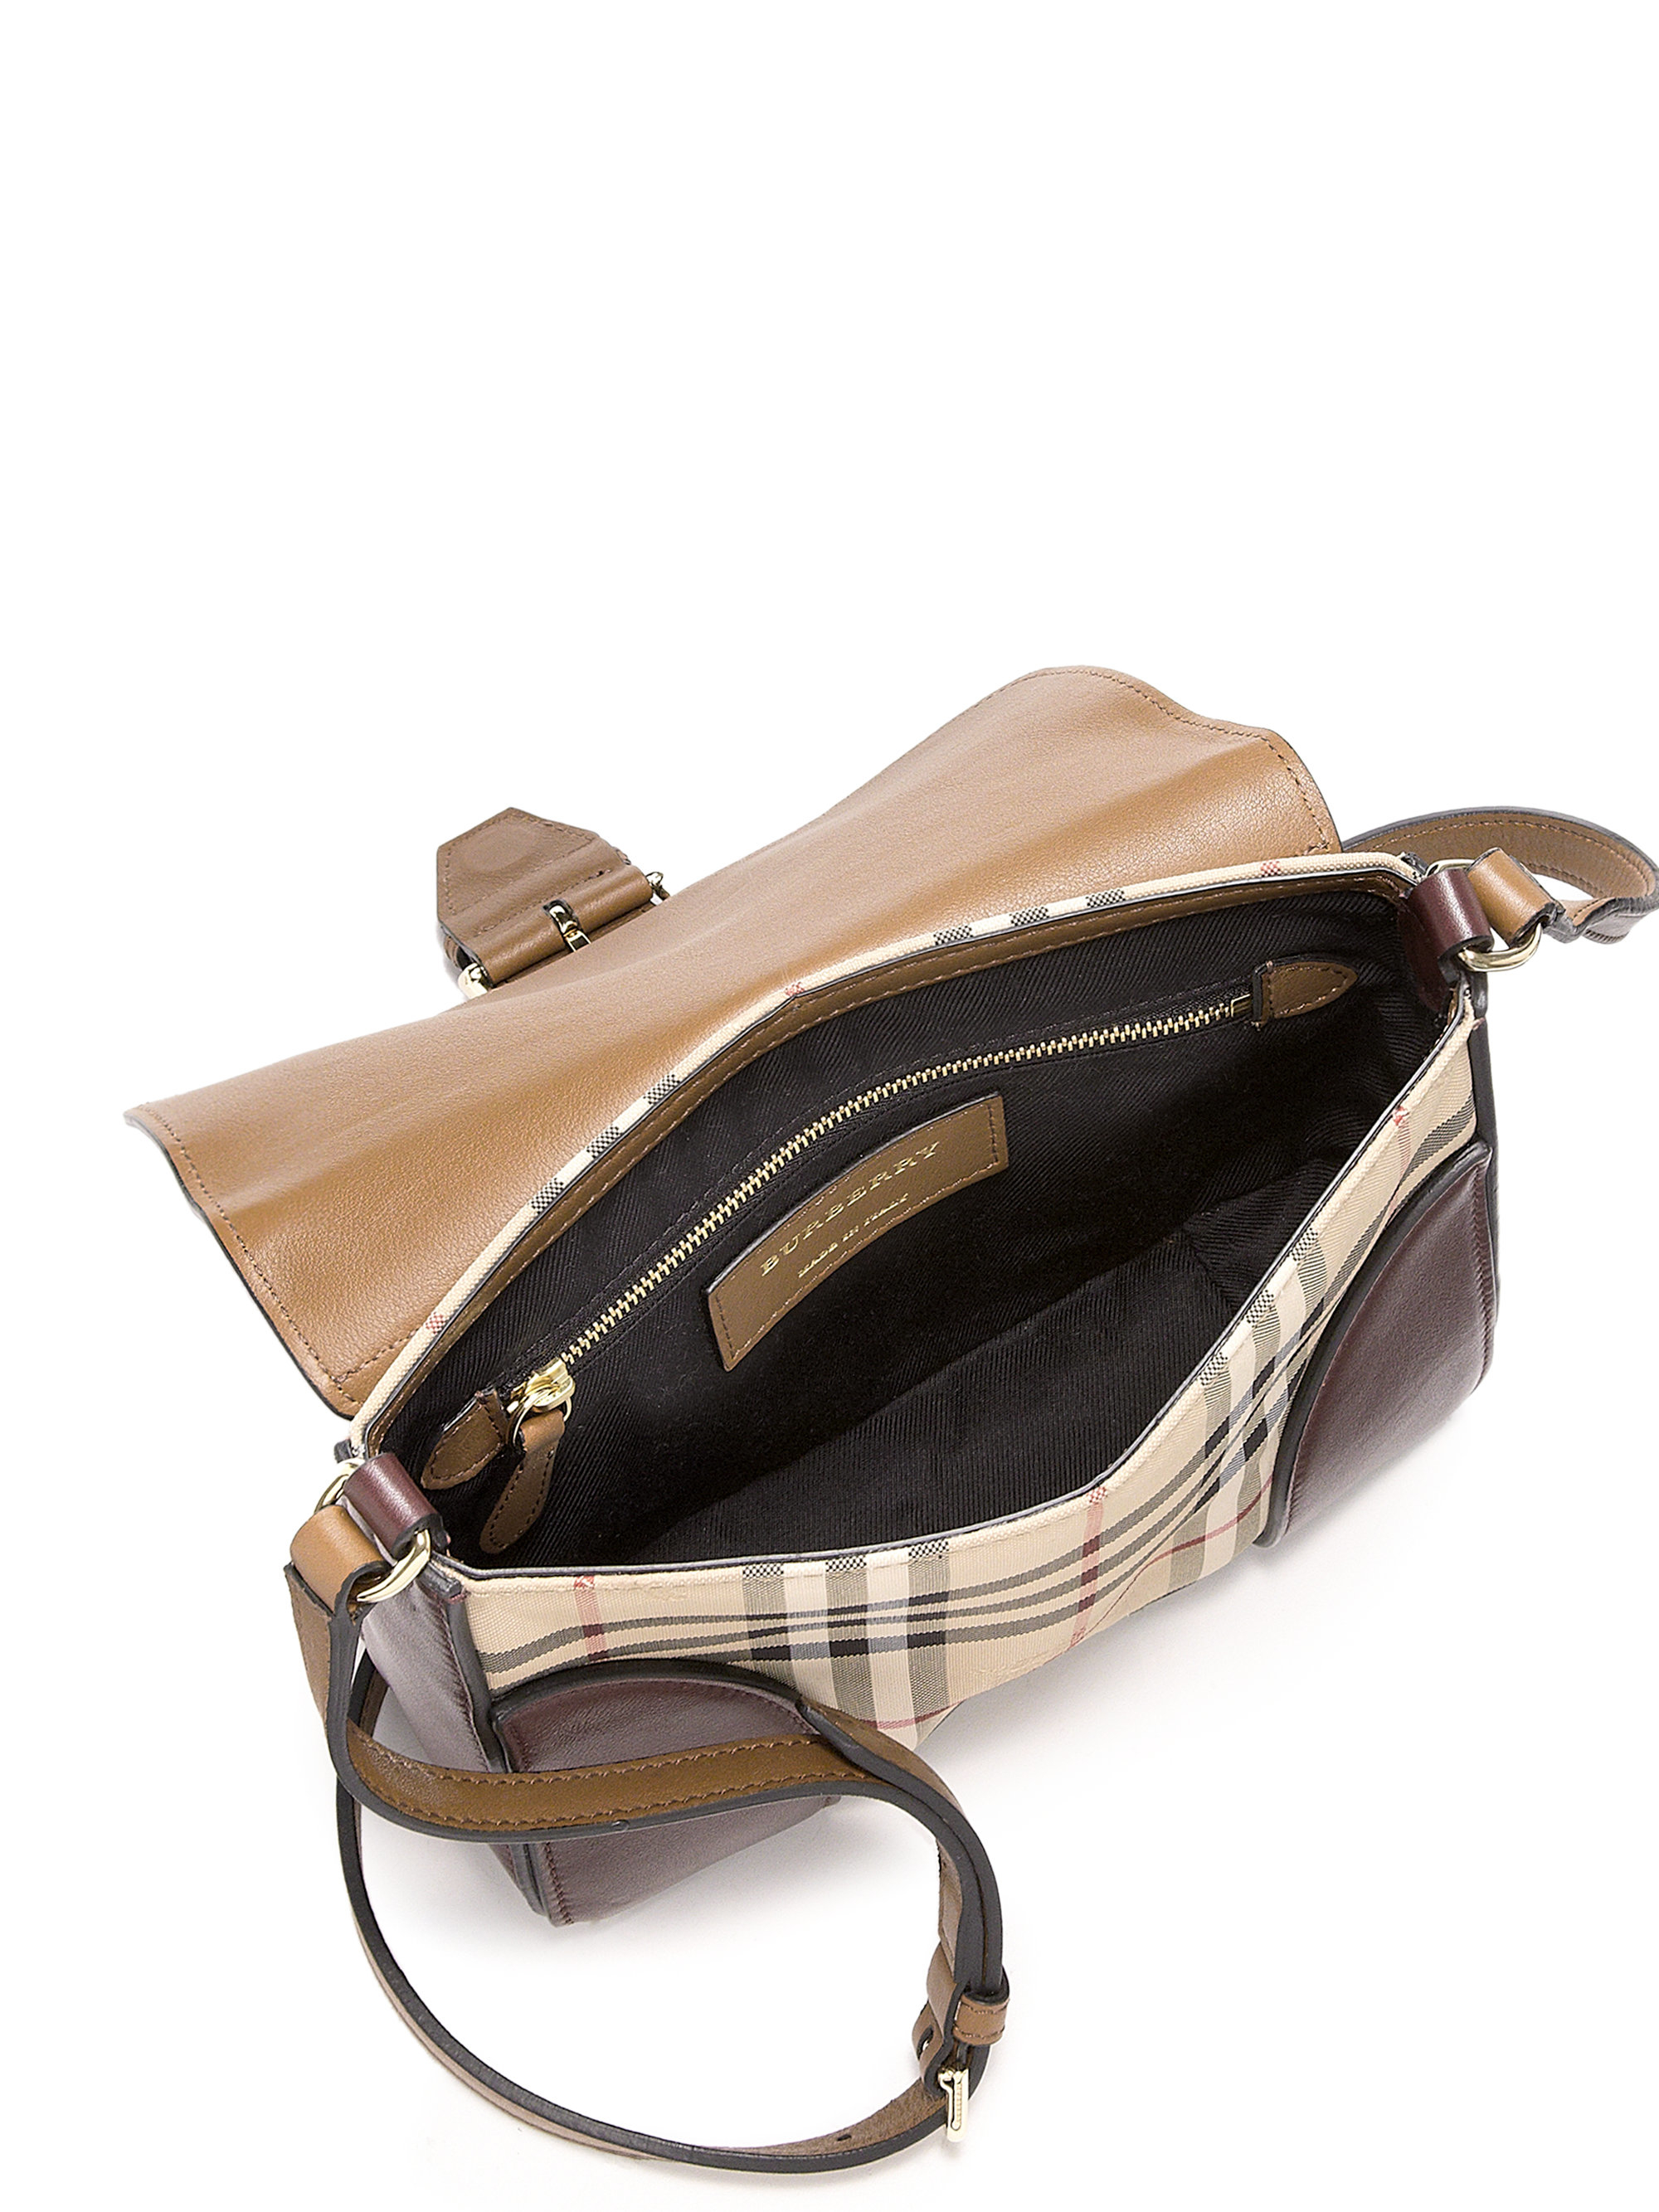 aa6f9415fed0 Lyst - Burberry Dickens Small Multicolor Leather   Horseferry Check ...